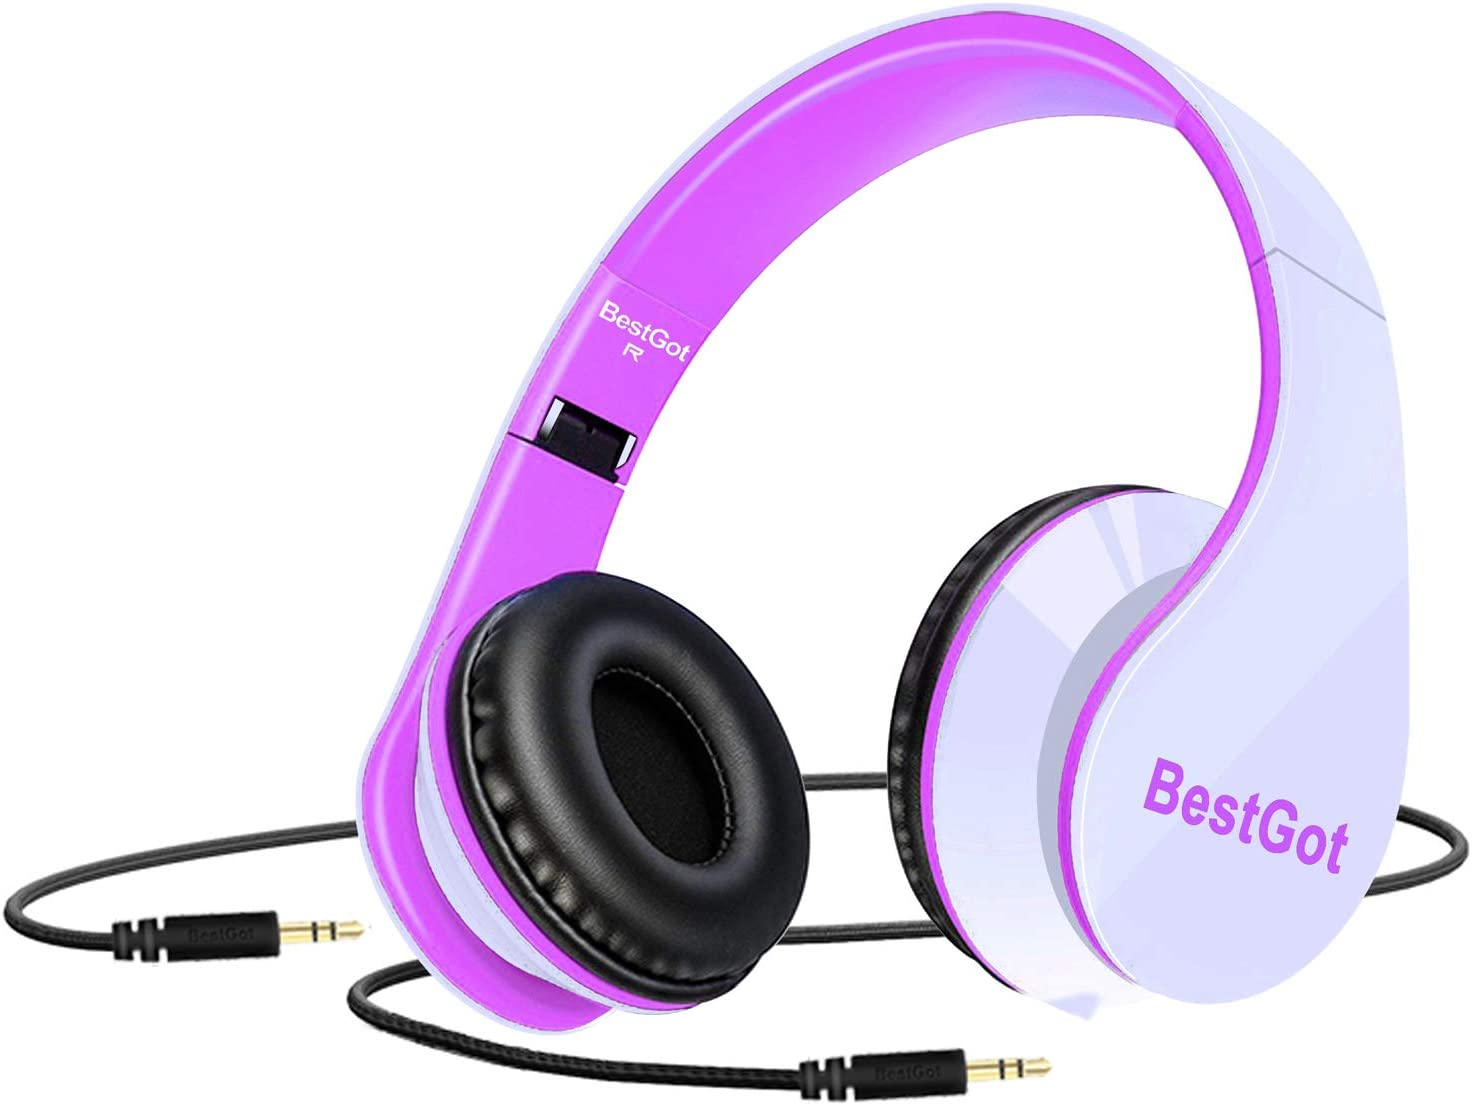 [2019 Upgrade] BestGot Kids Headphones for Kids Adult Foldable Headphones with 3.5mm Plug Removable Cord (White/Pink) (Without Cloth Bag and Microphone)